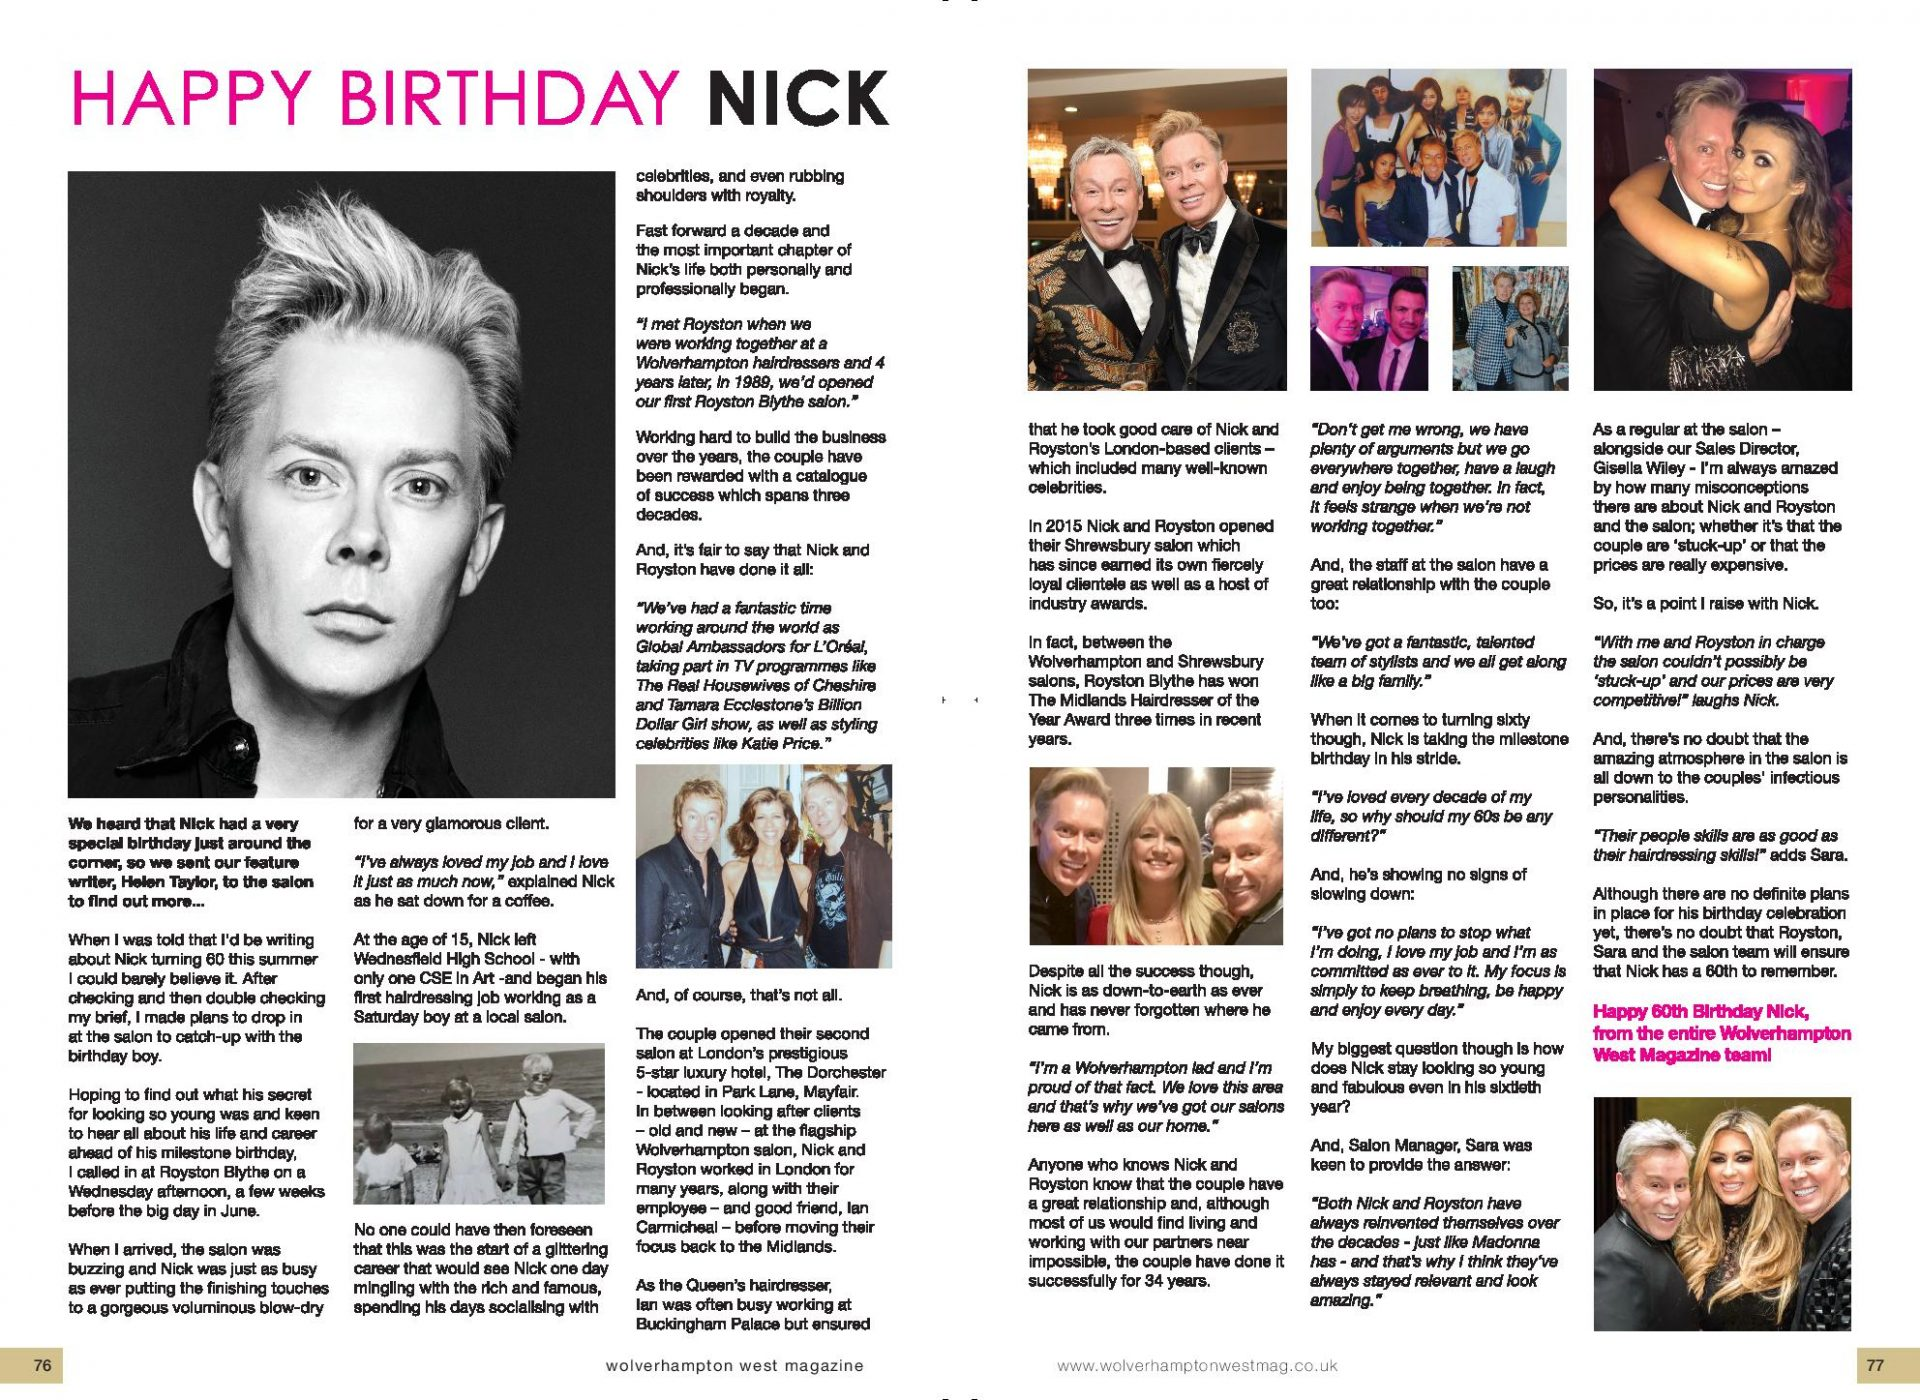 Special Birthday Celebrations For Nick